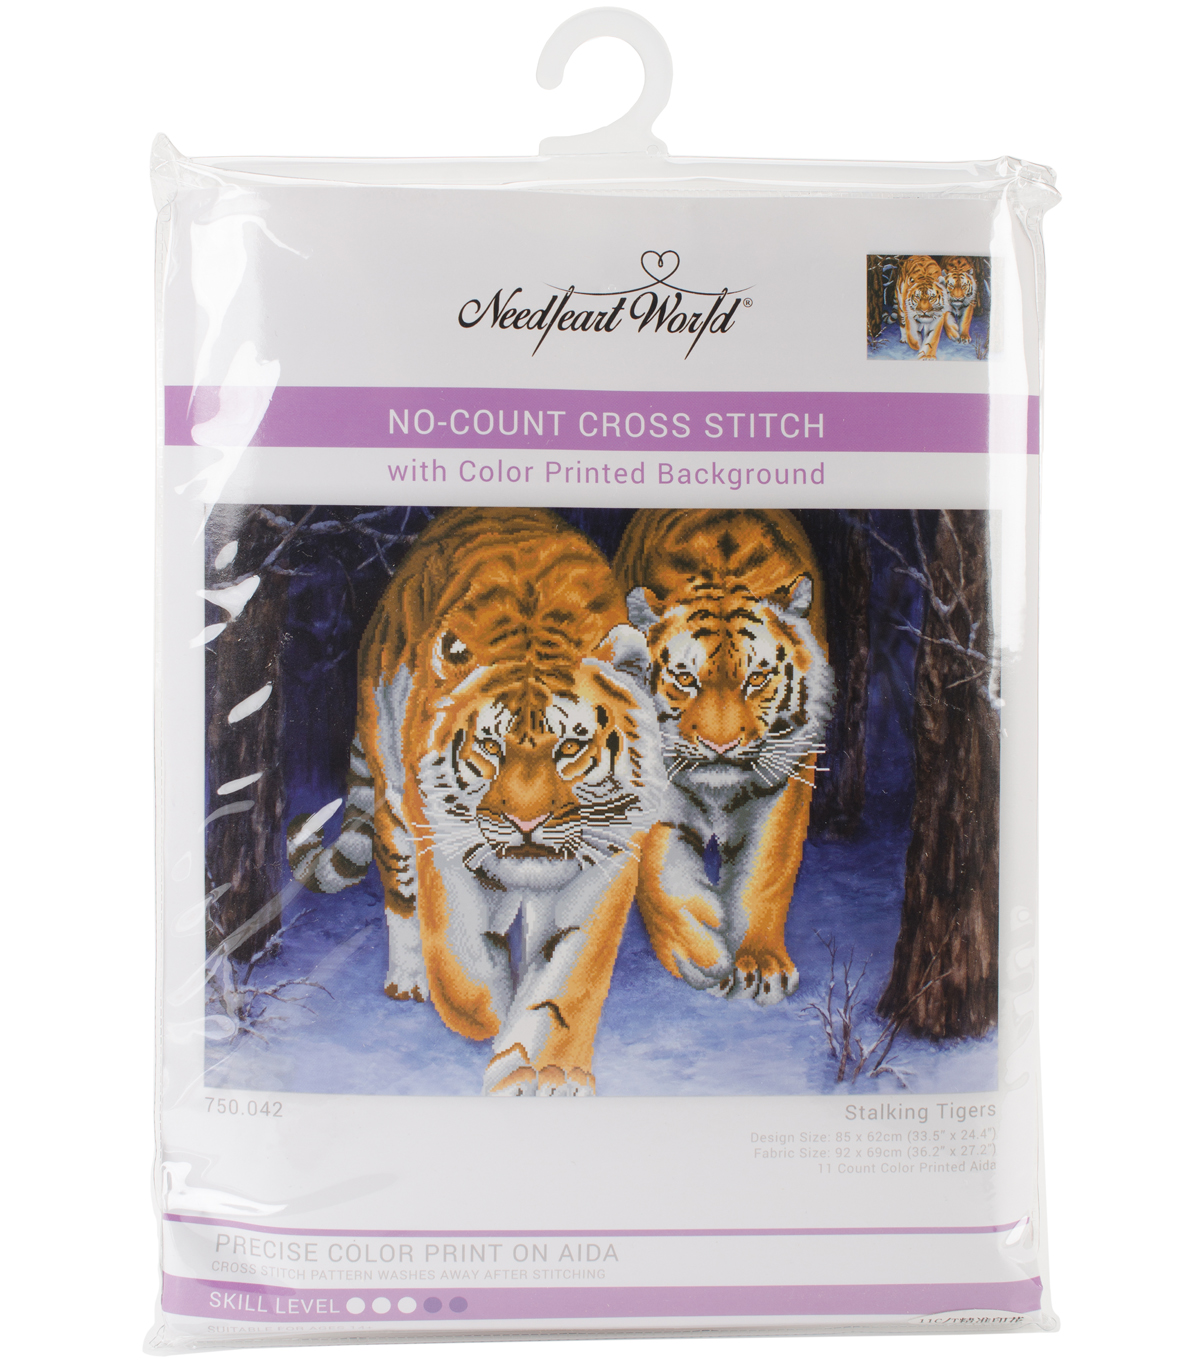 Needleart World Printed Cross Stitch Kit-Stalking Tigers